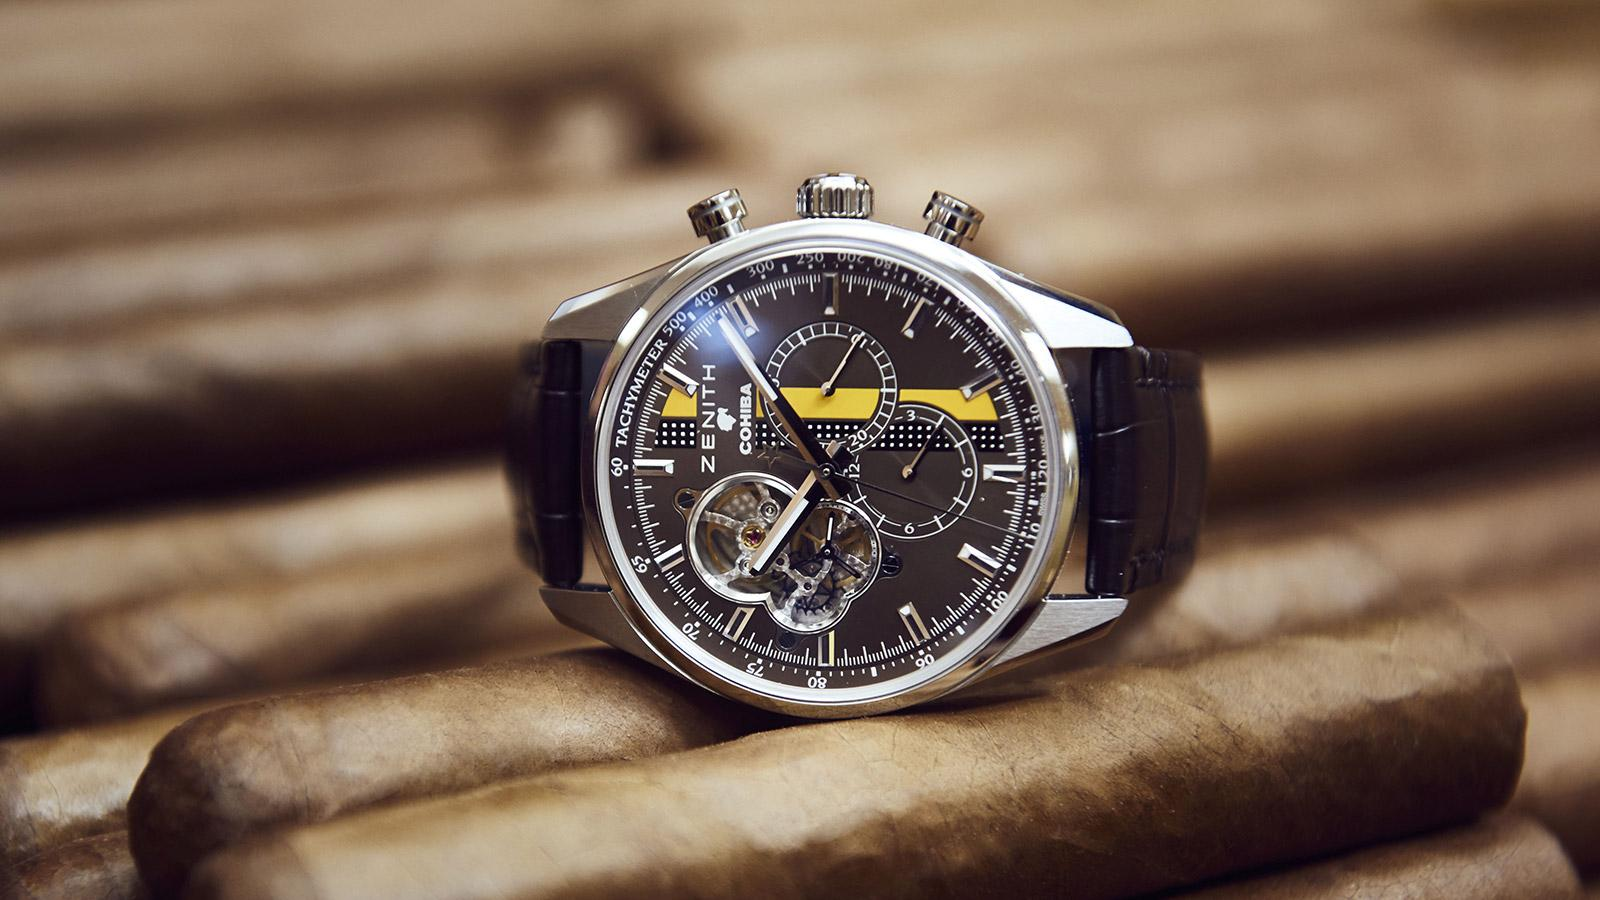 Zenith Launches Cohiba Watch